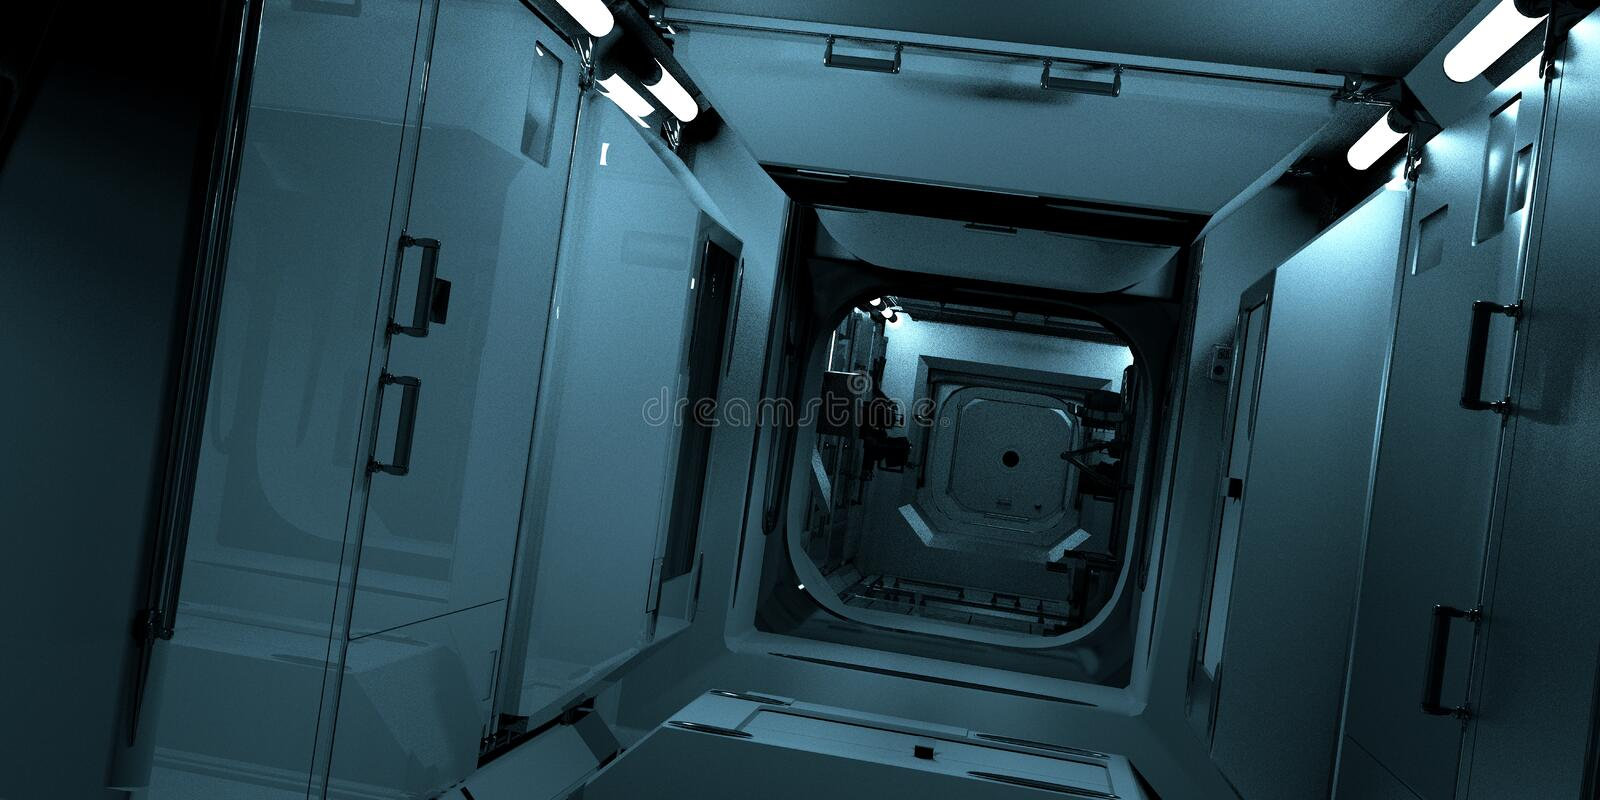 Extremely detailed and realistic high resolution 3D illustration of the ISS - International Space Station Interior. royalty free illustration